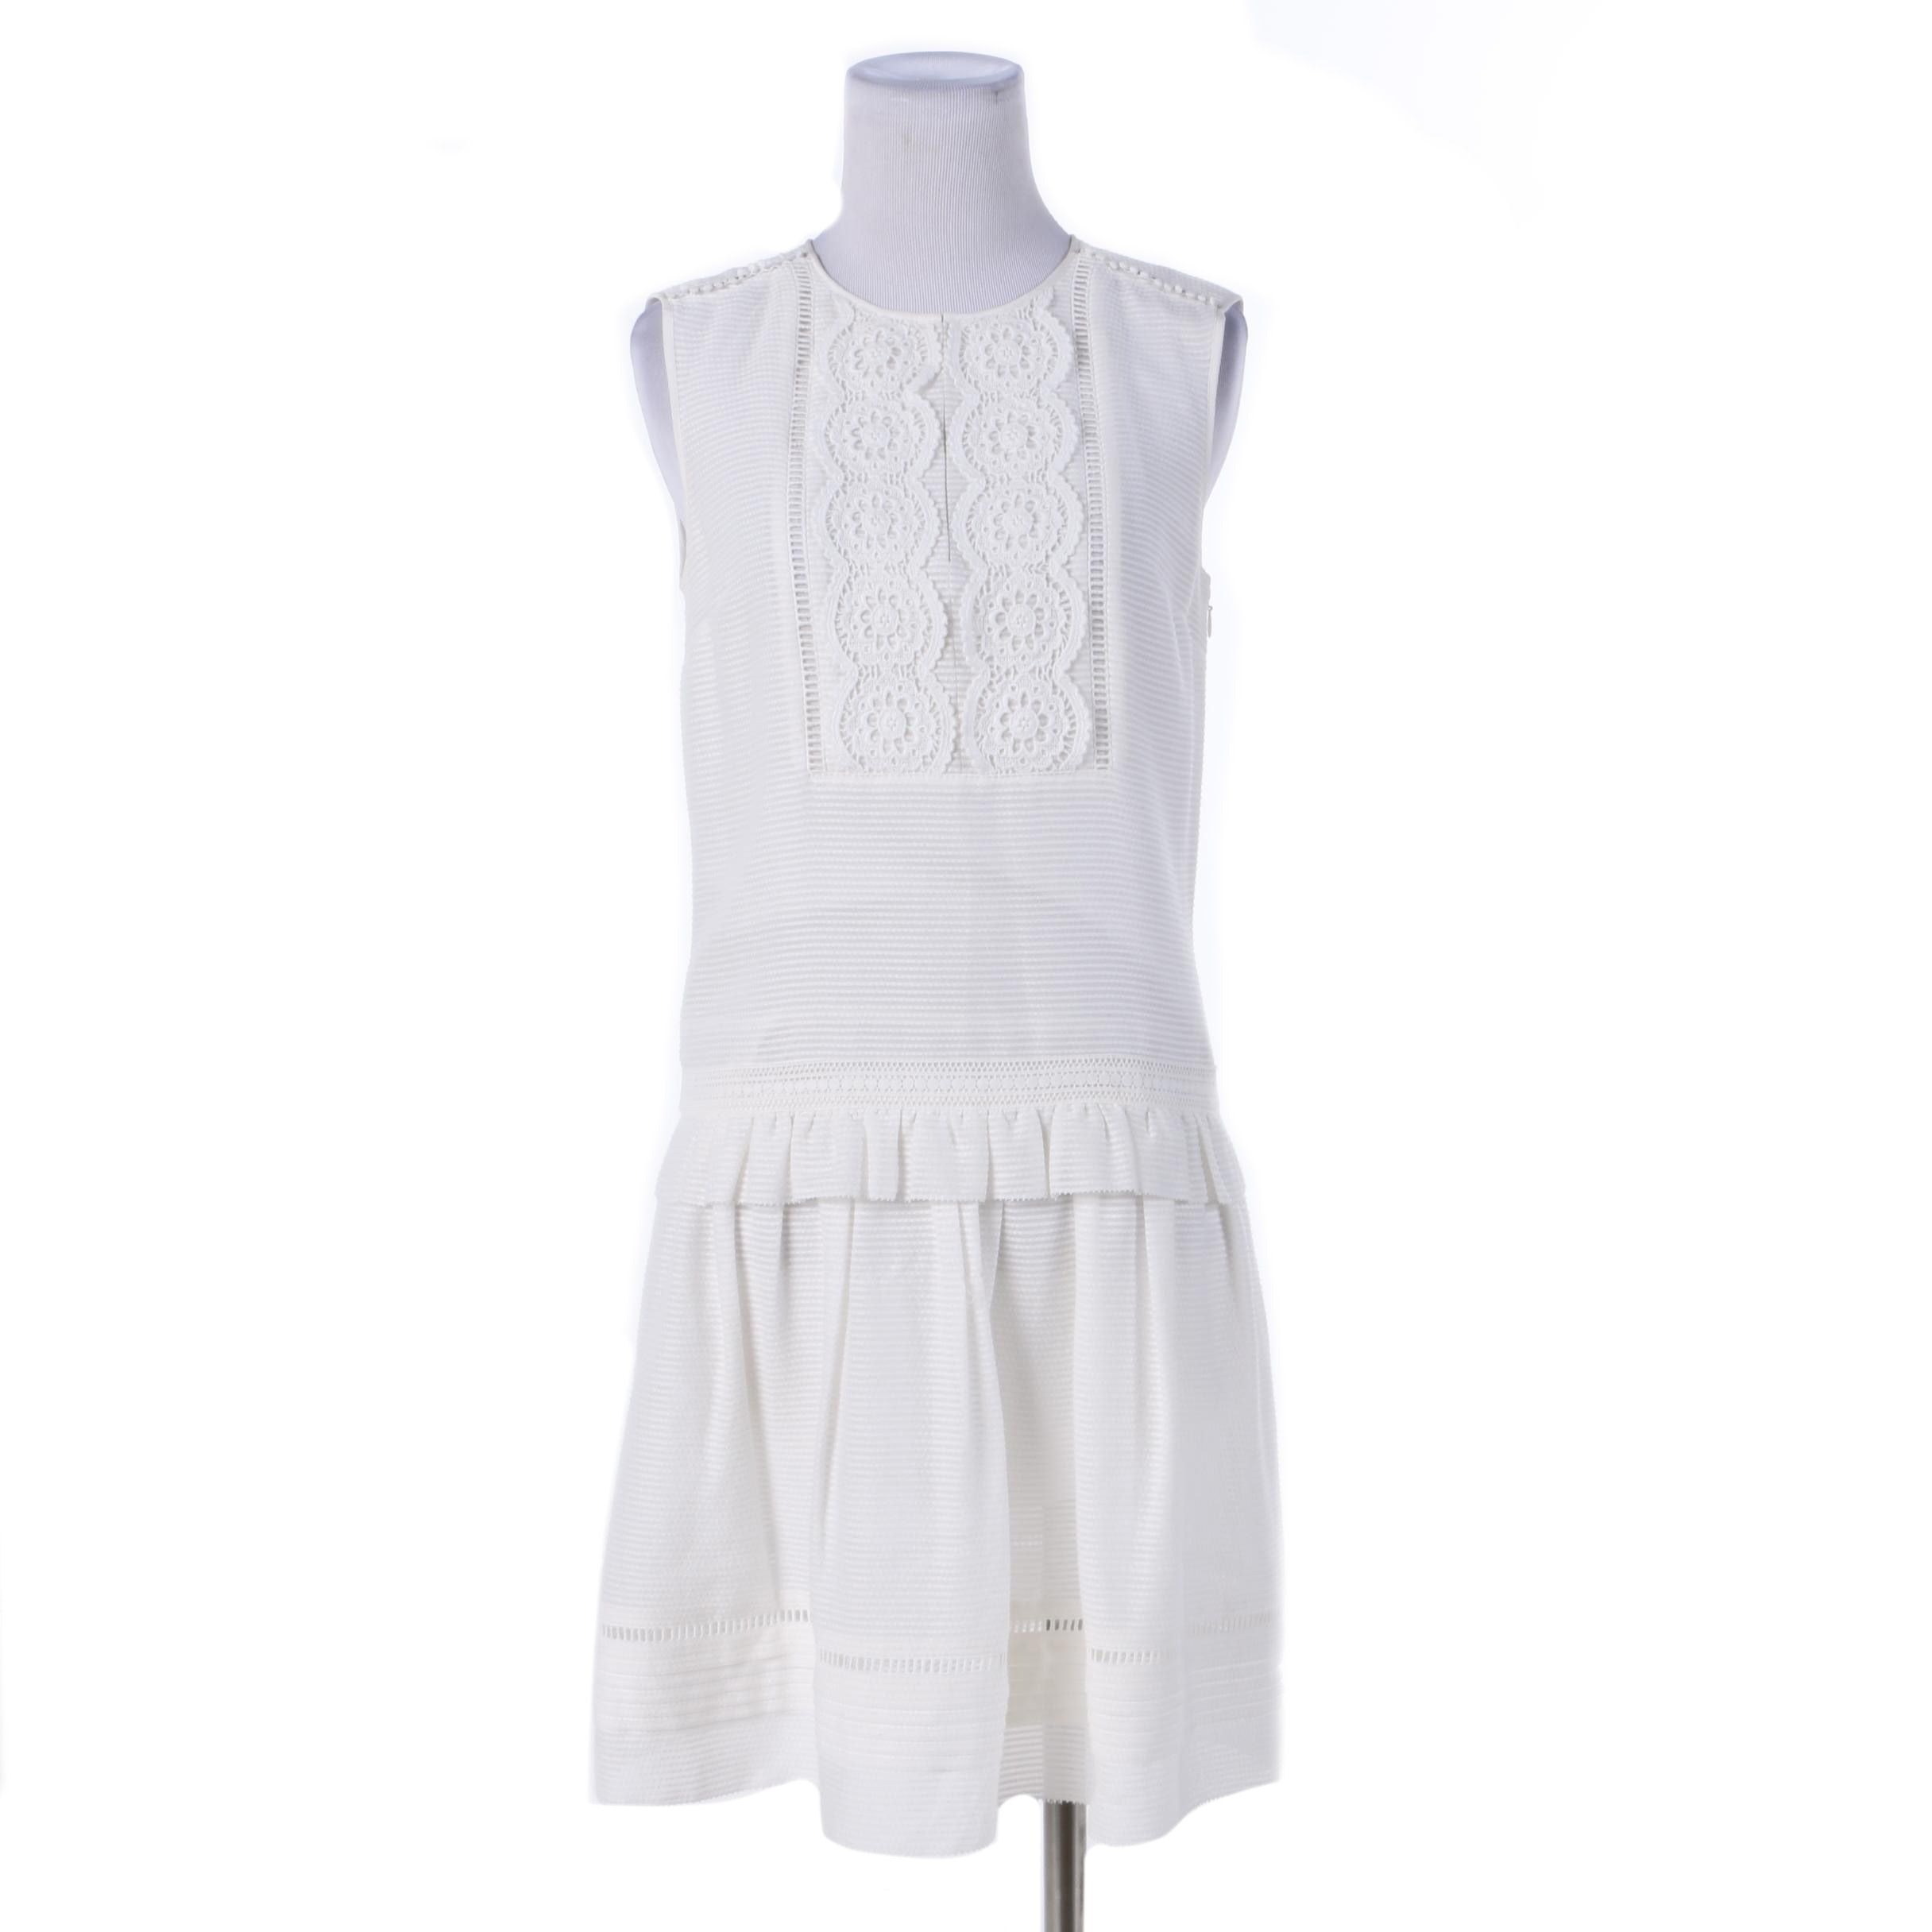 Women's Burberry White Sleeveless Dress